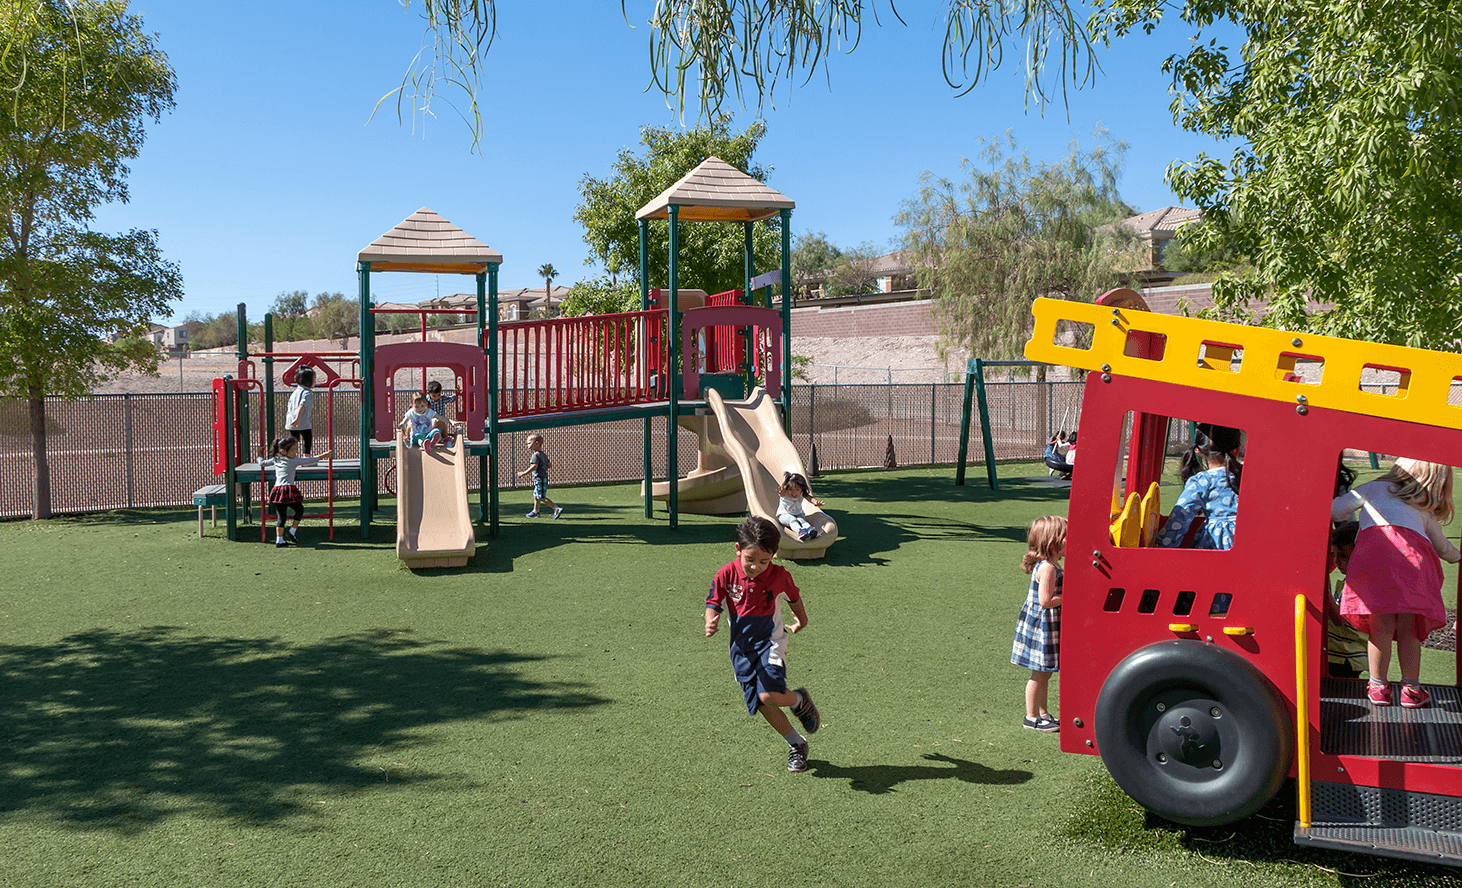 Playground Structure | Challenger School - Summerlin | Private School In Las Vegas, Nevada